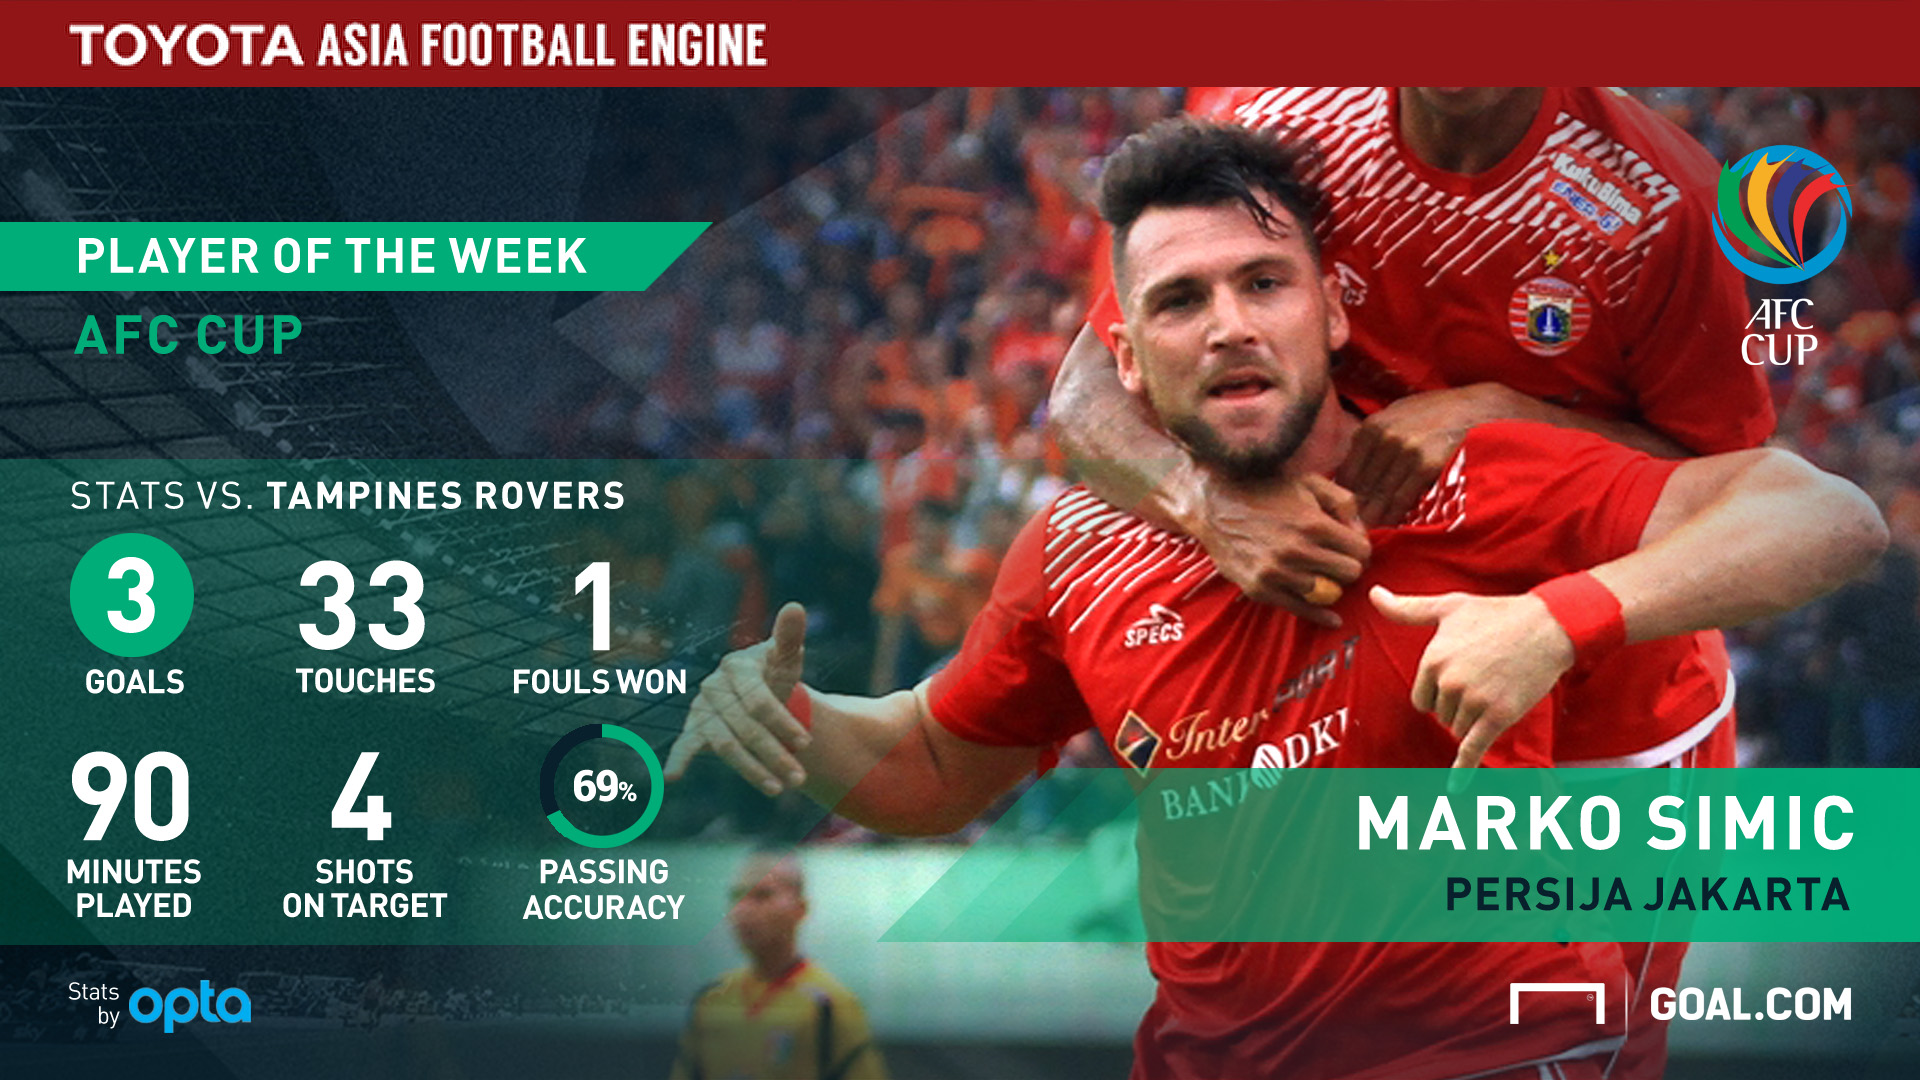 Marko Simic: Persija Double Winner